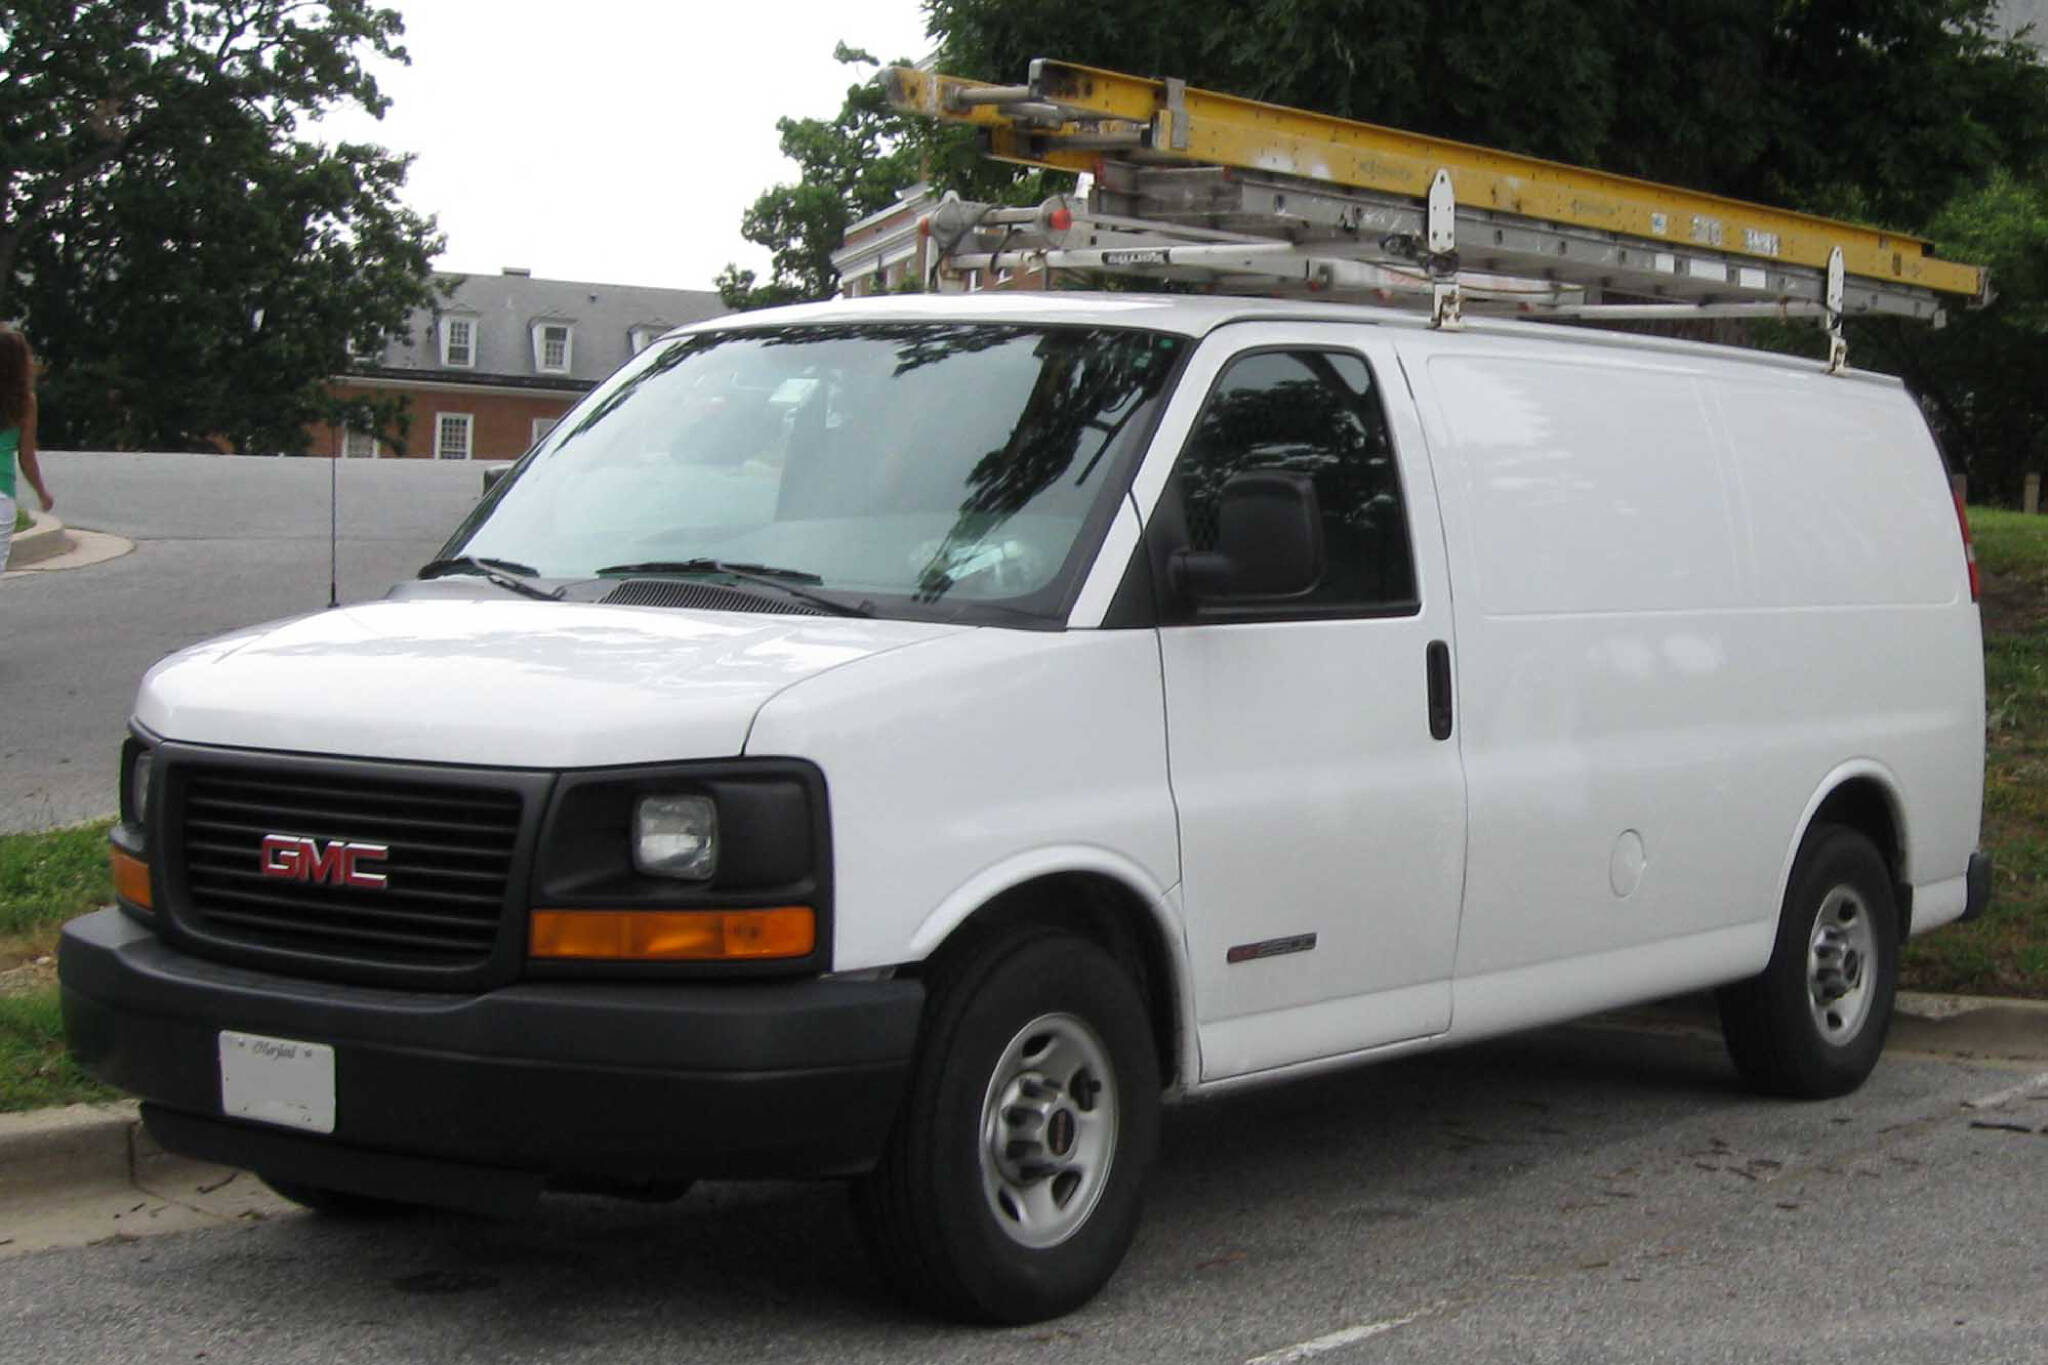 Enterprise Van Rental >> 5 Cargo Van Rental Options In Toronto